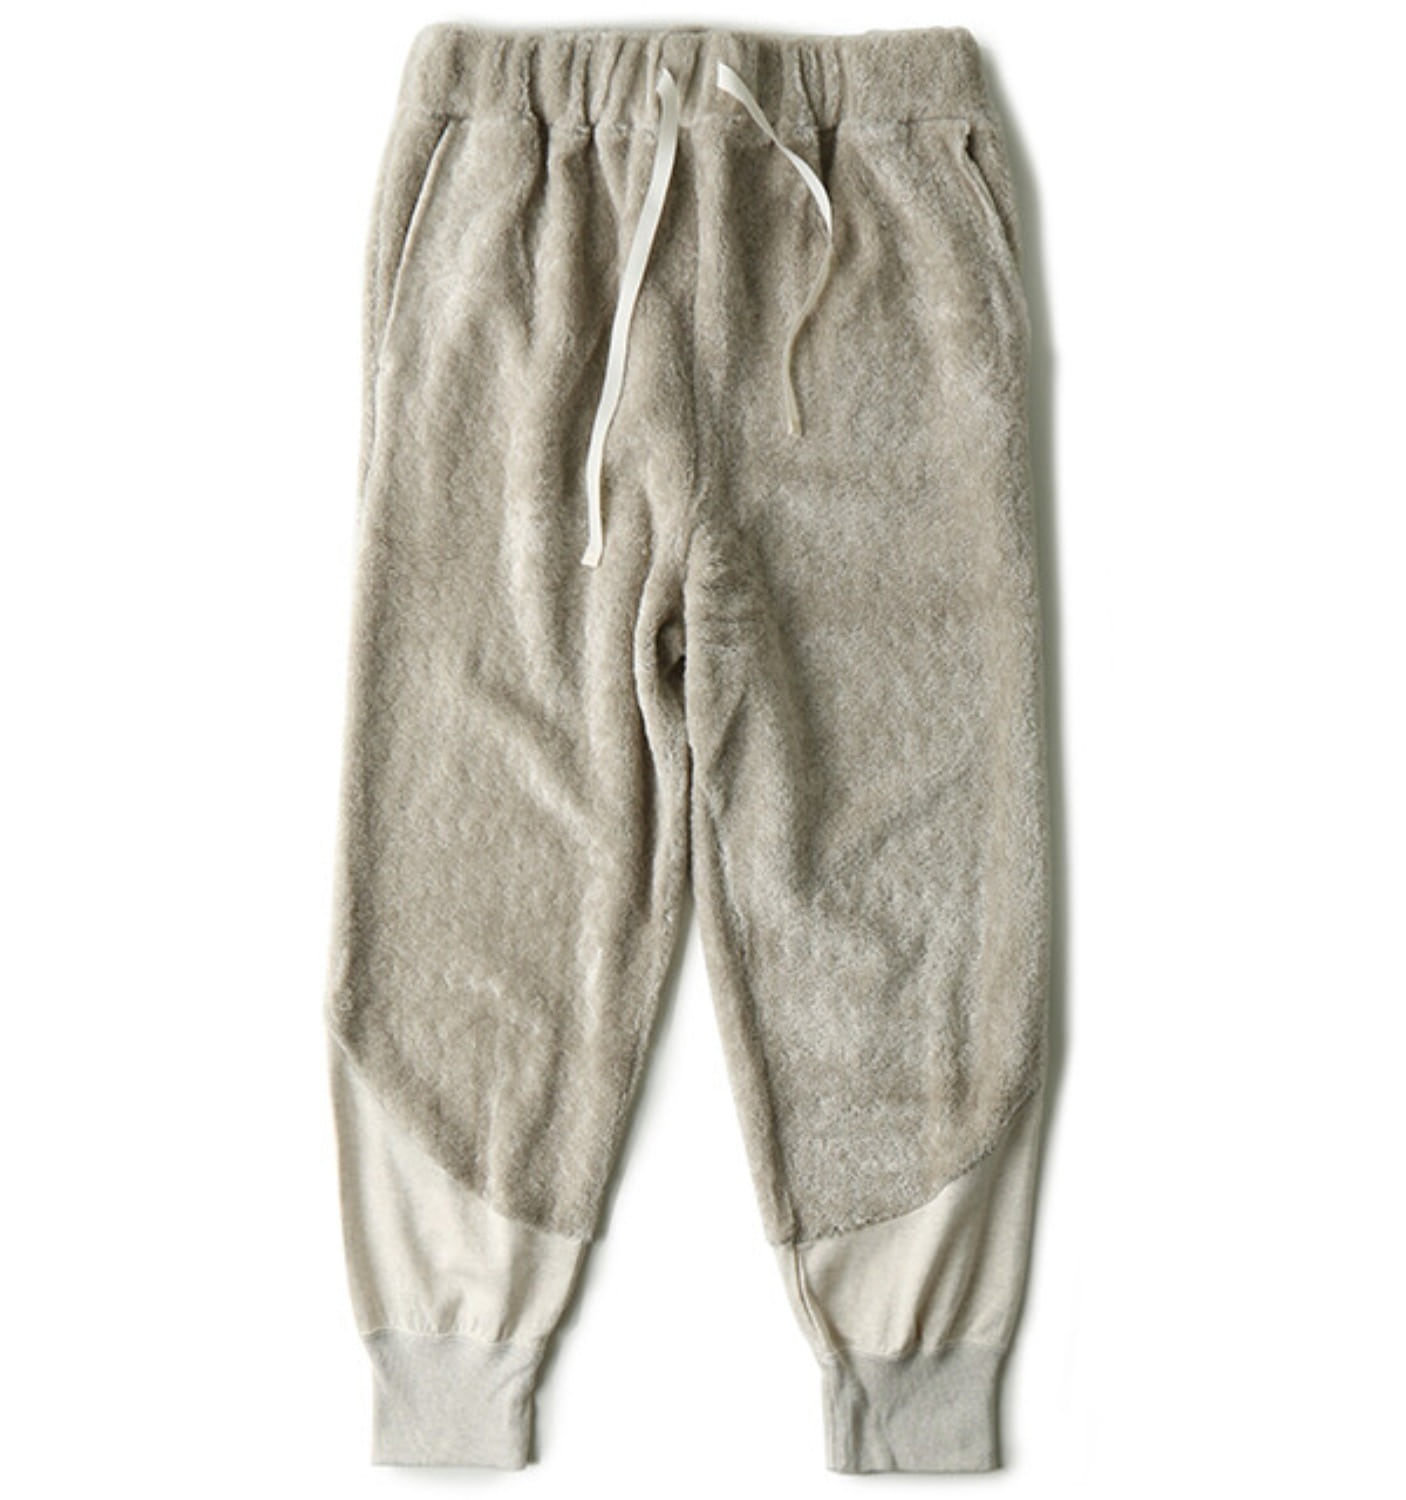 SWITCH PANTS BEIGE